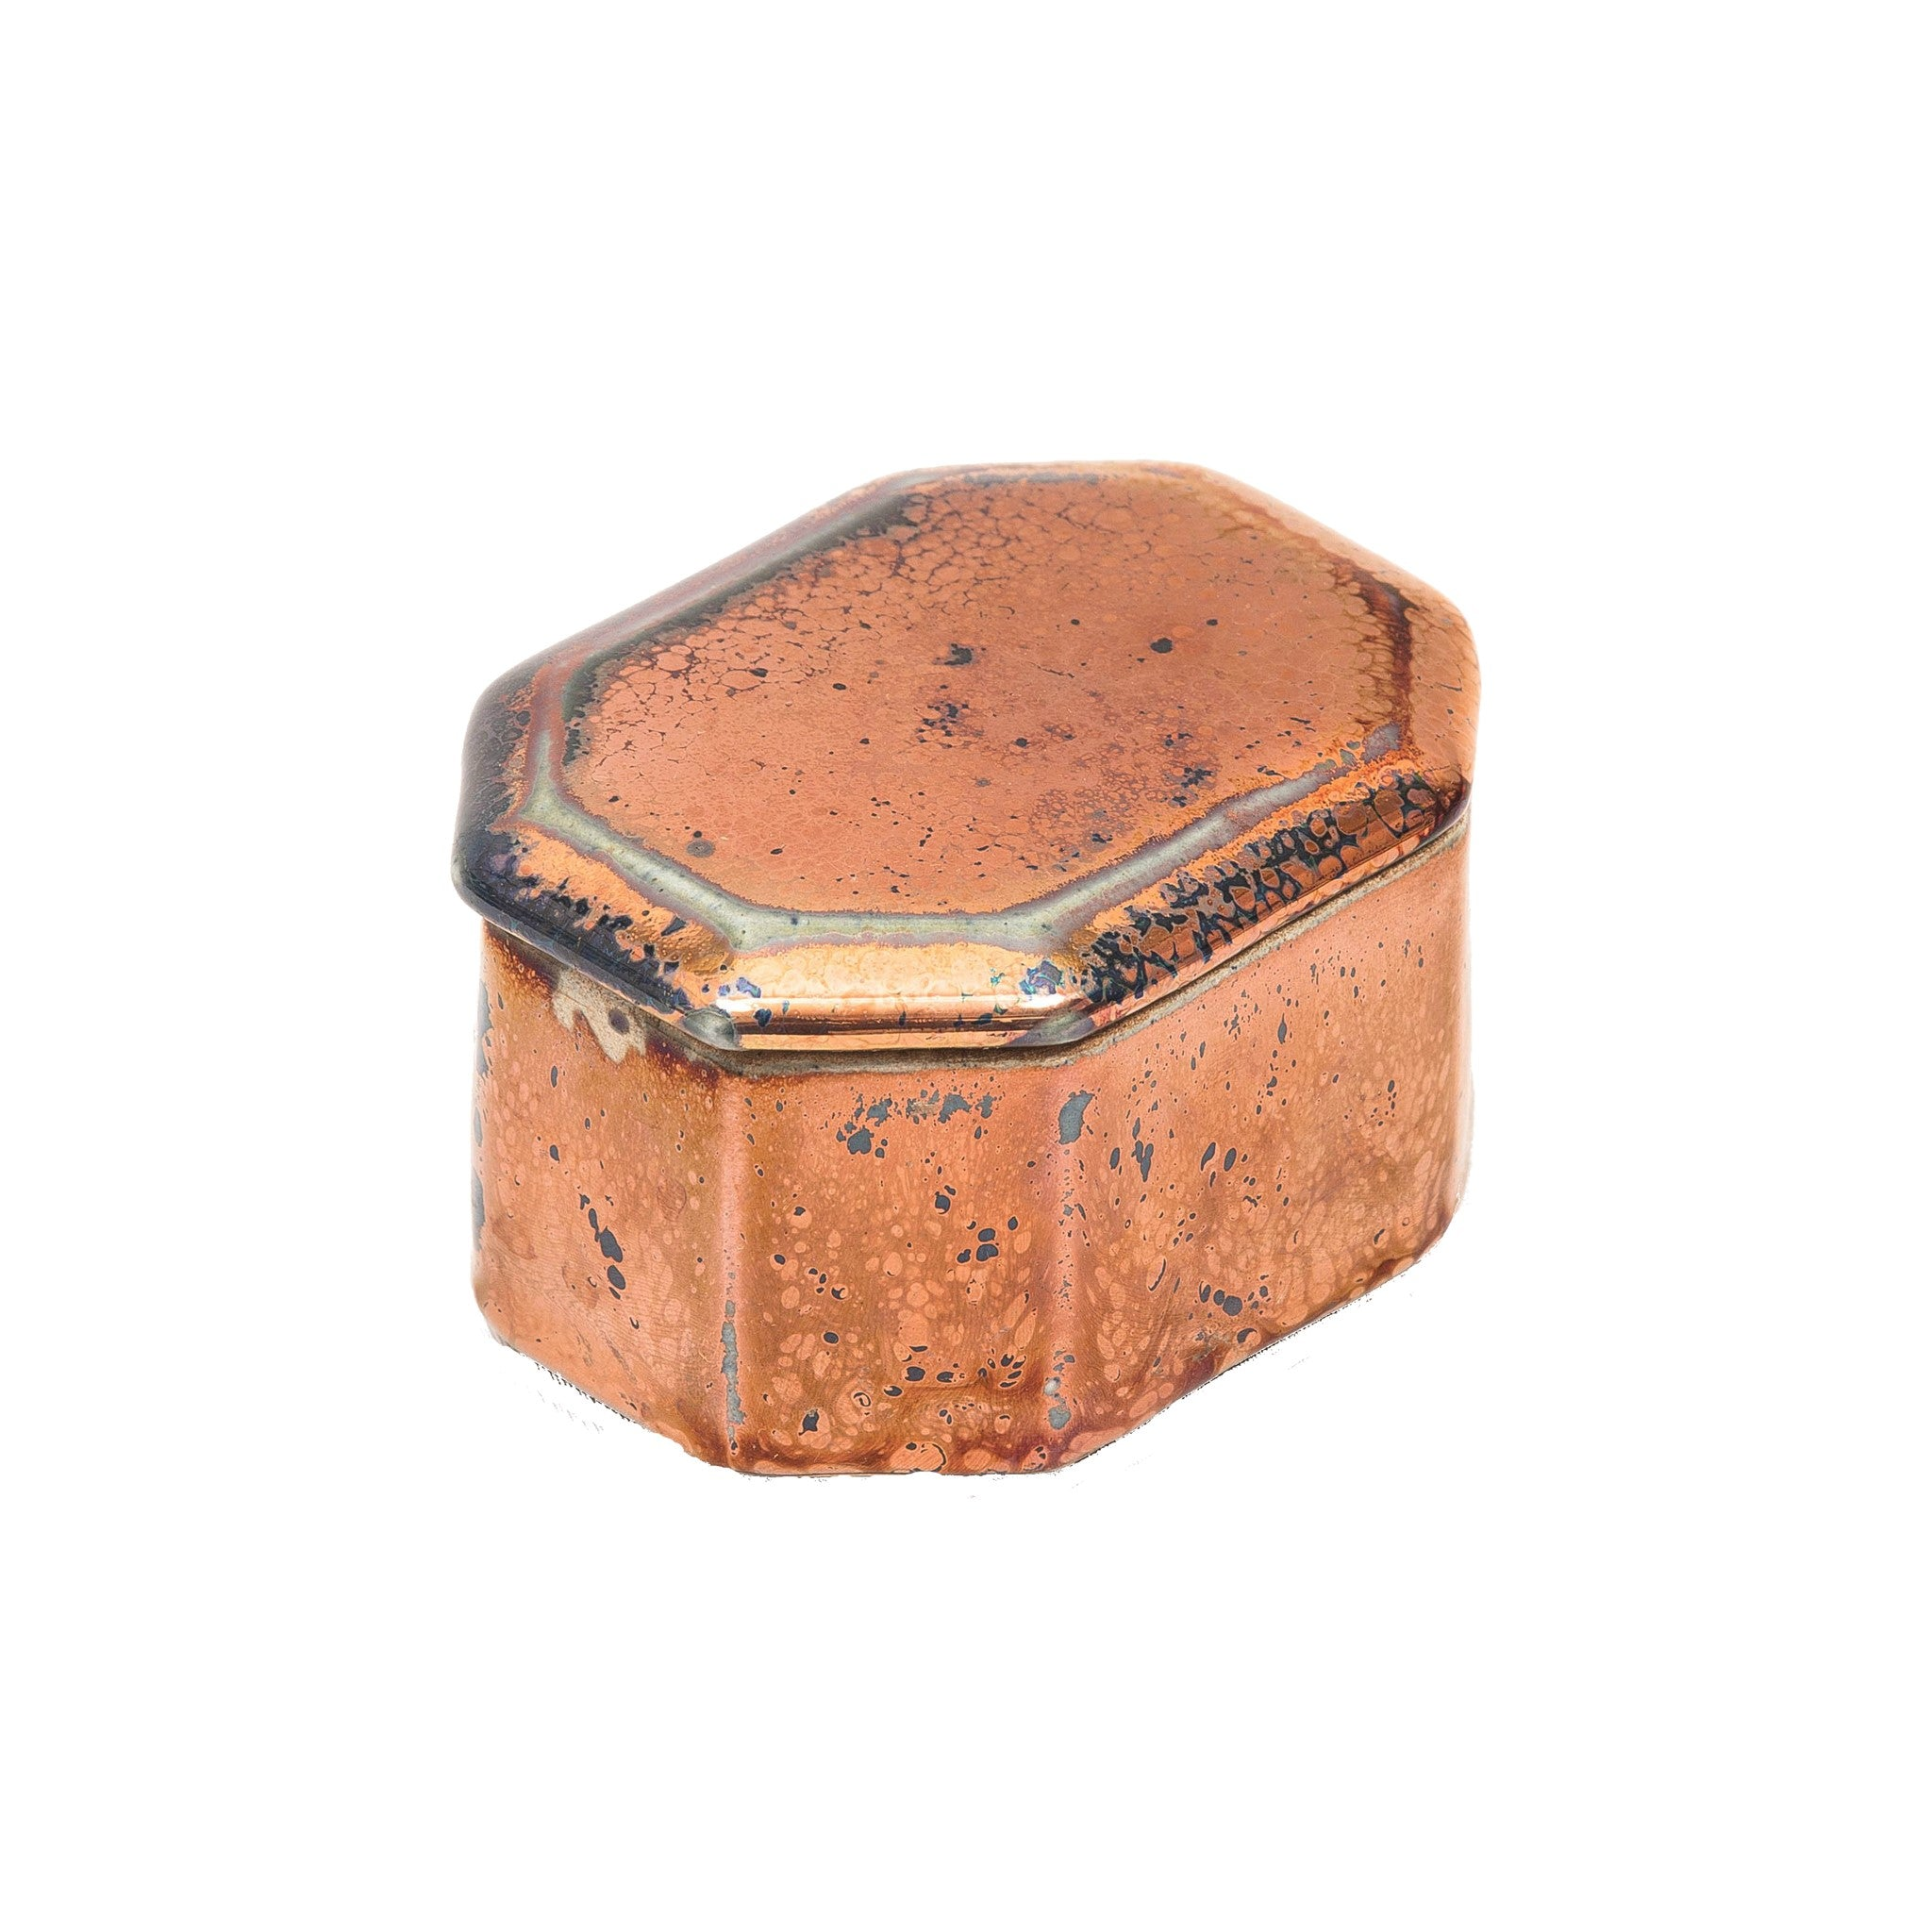 Ceramic Octagonal Treasure Box in Antique Metallic Copper Colour